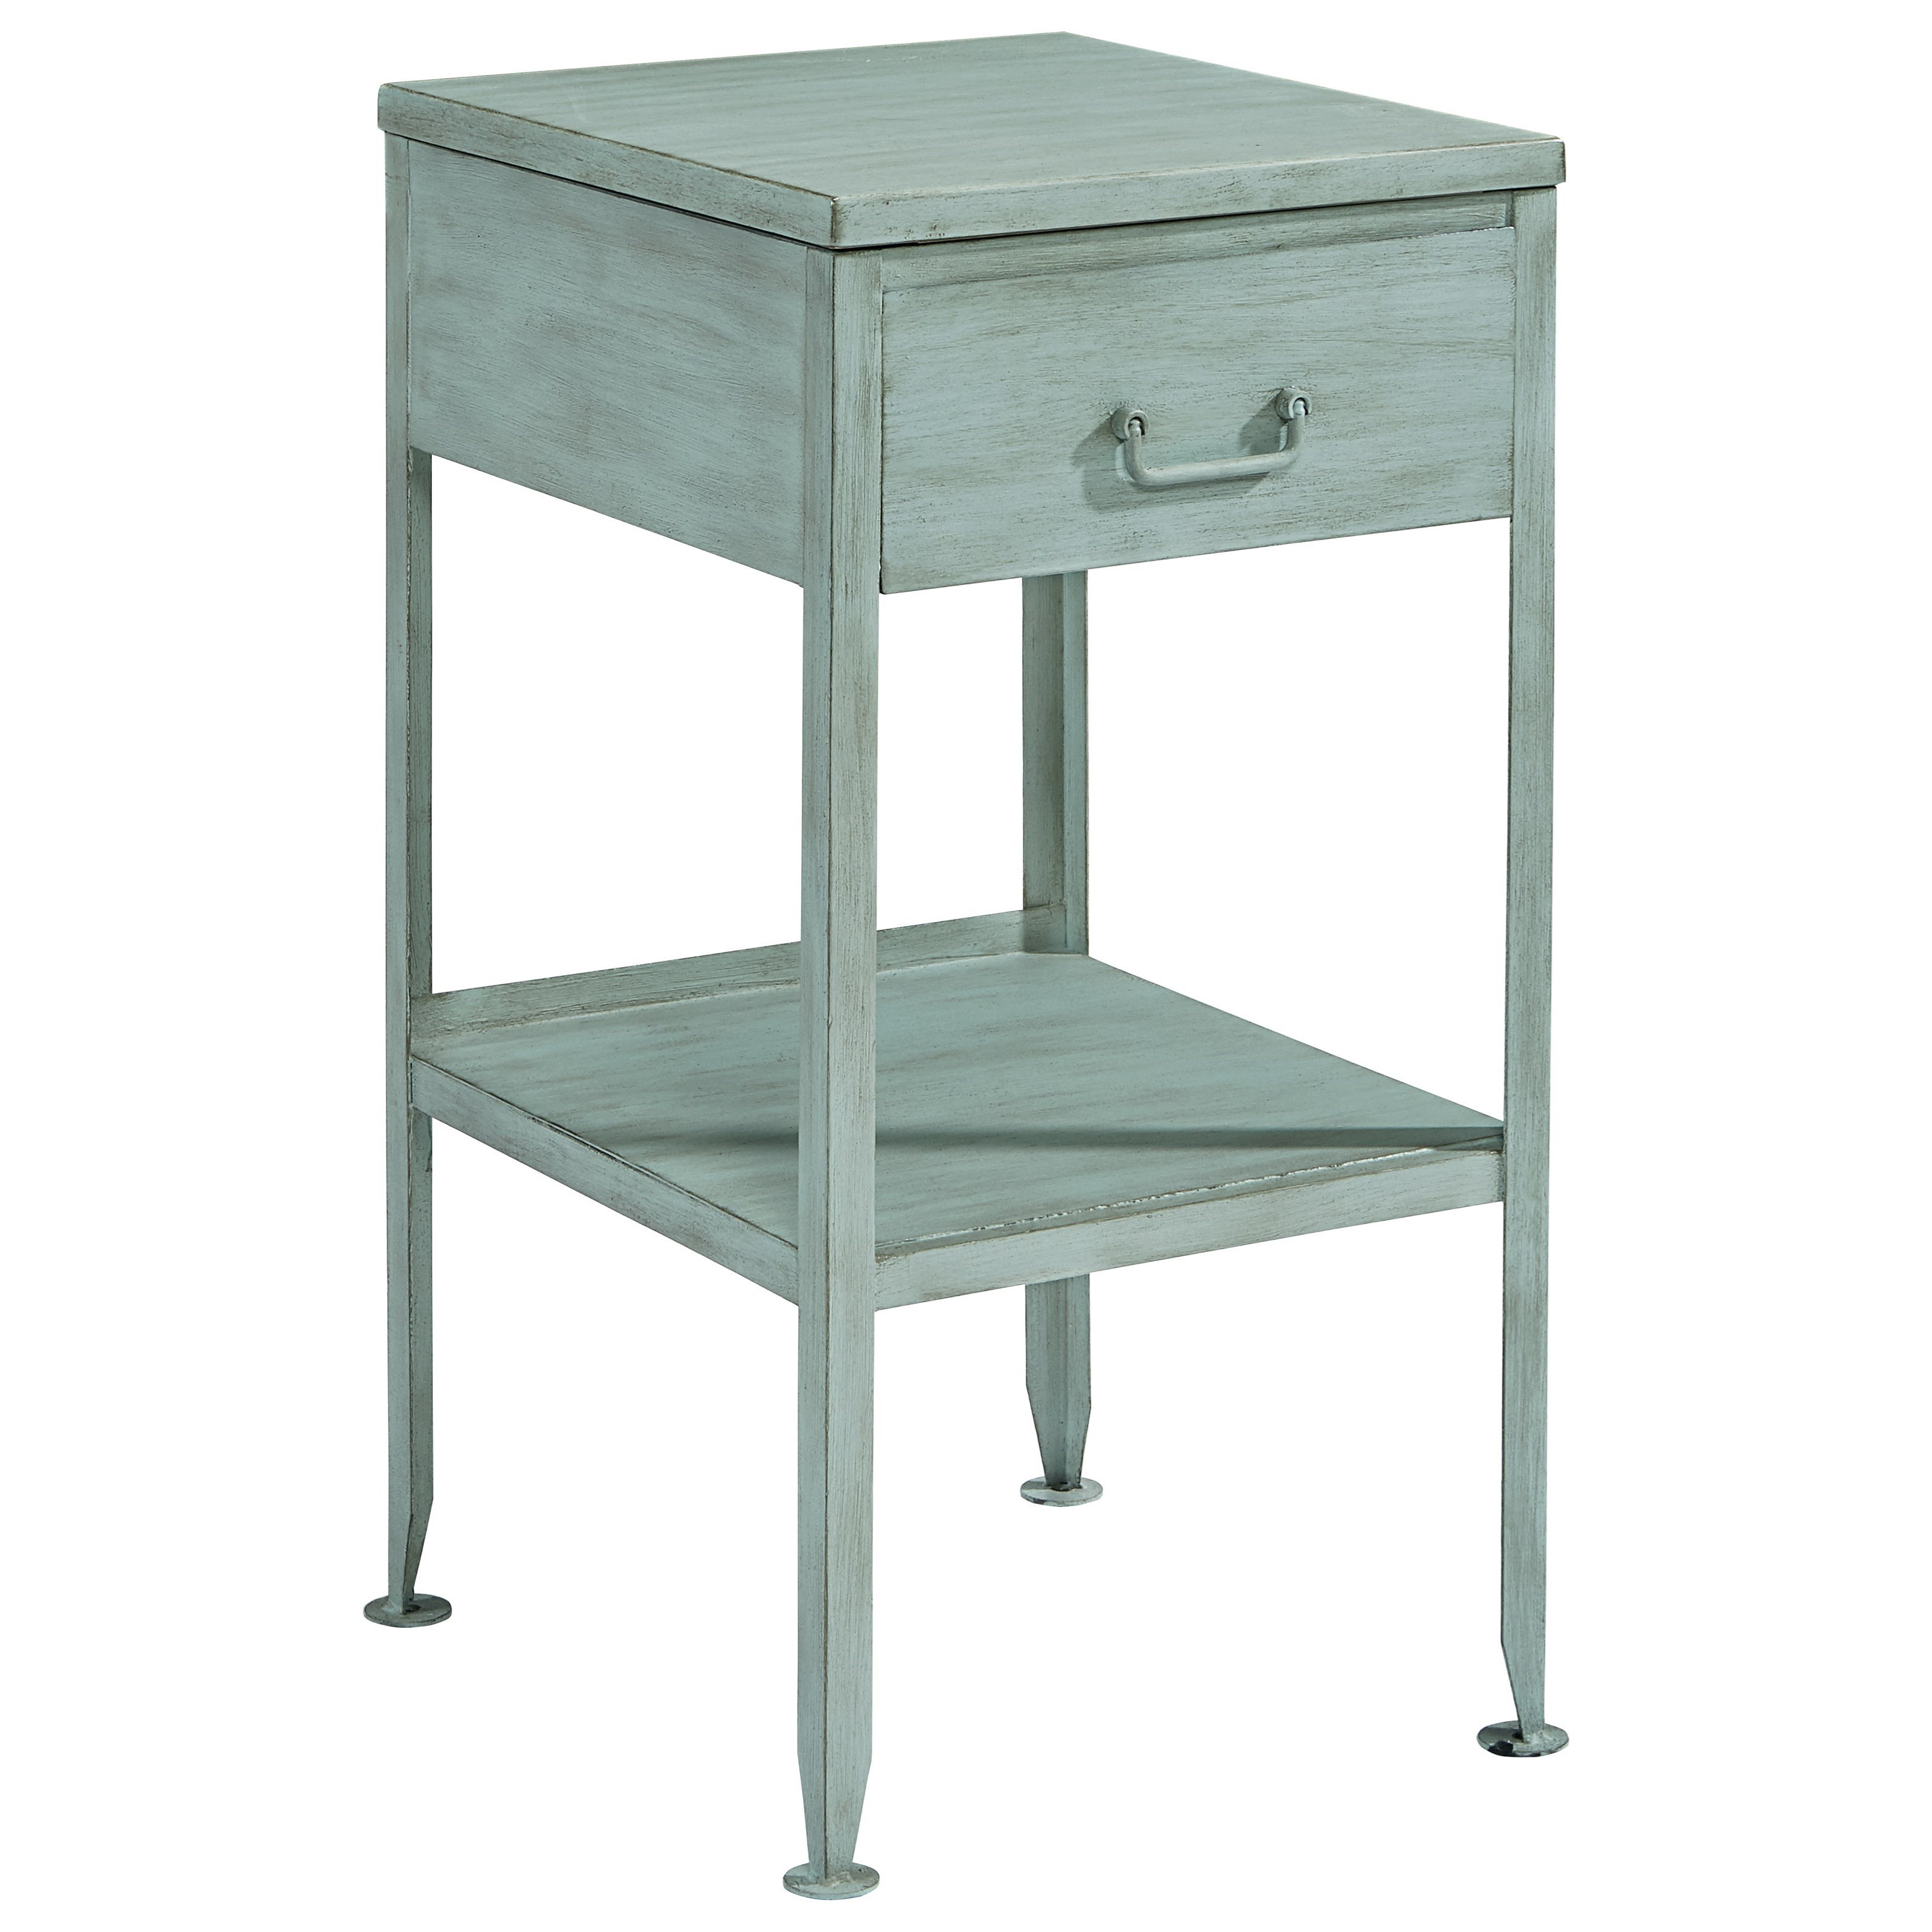 Magnolia Home By Joanna Gaines Accent Elements Small Metal Side Table Hudson S Furniture End